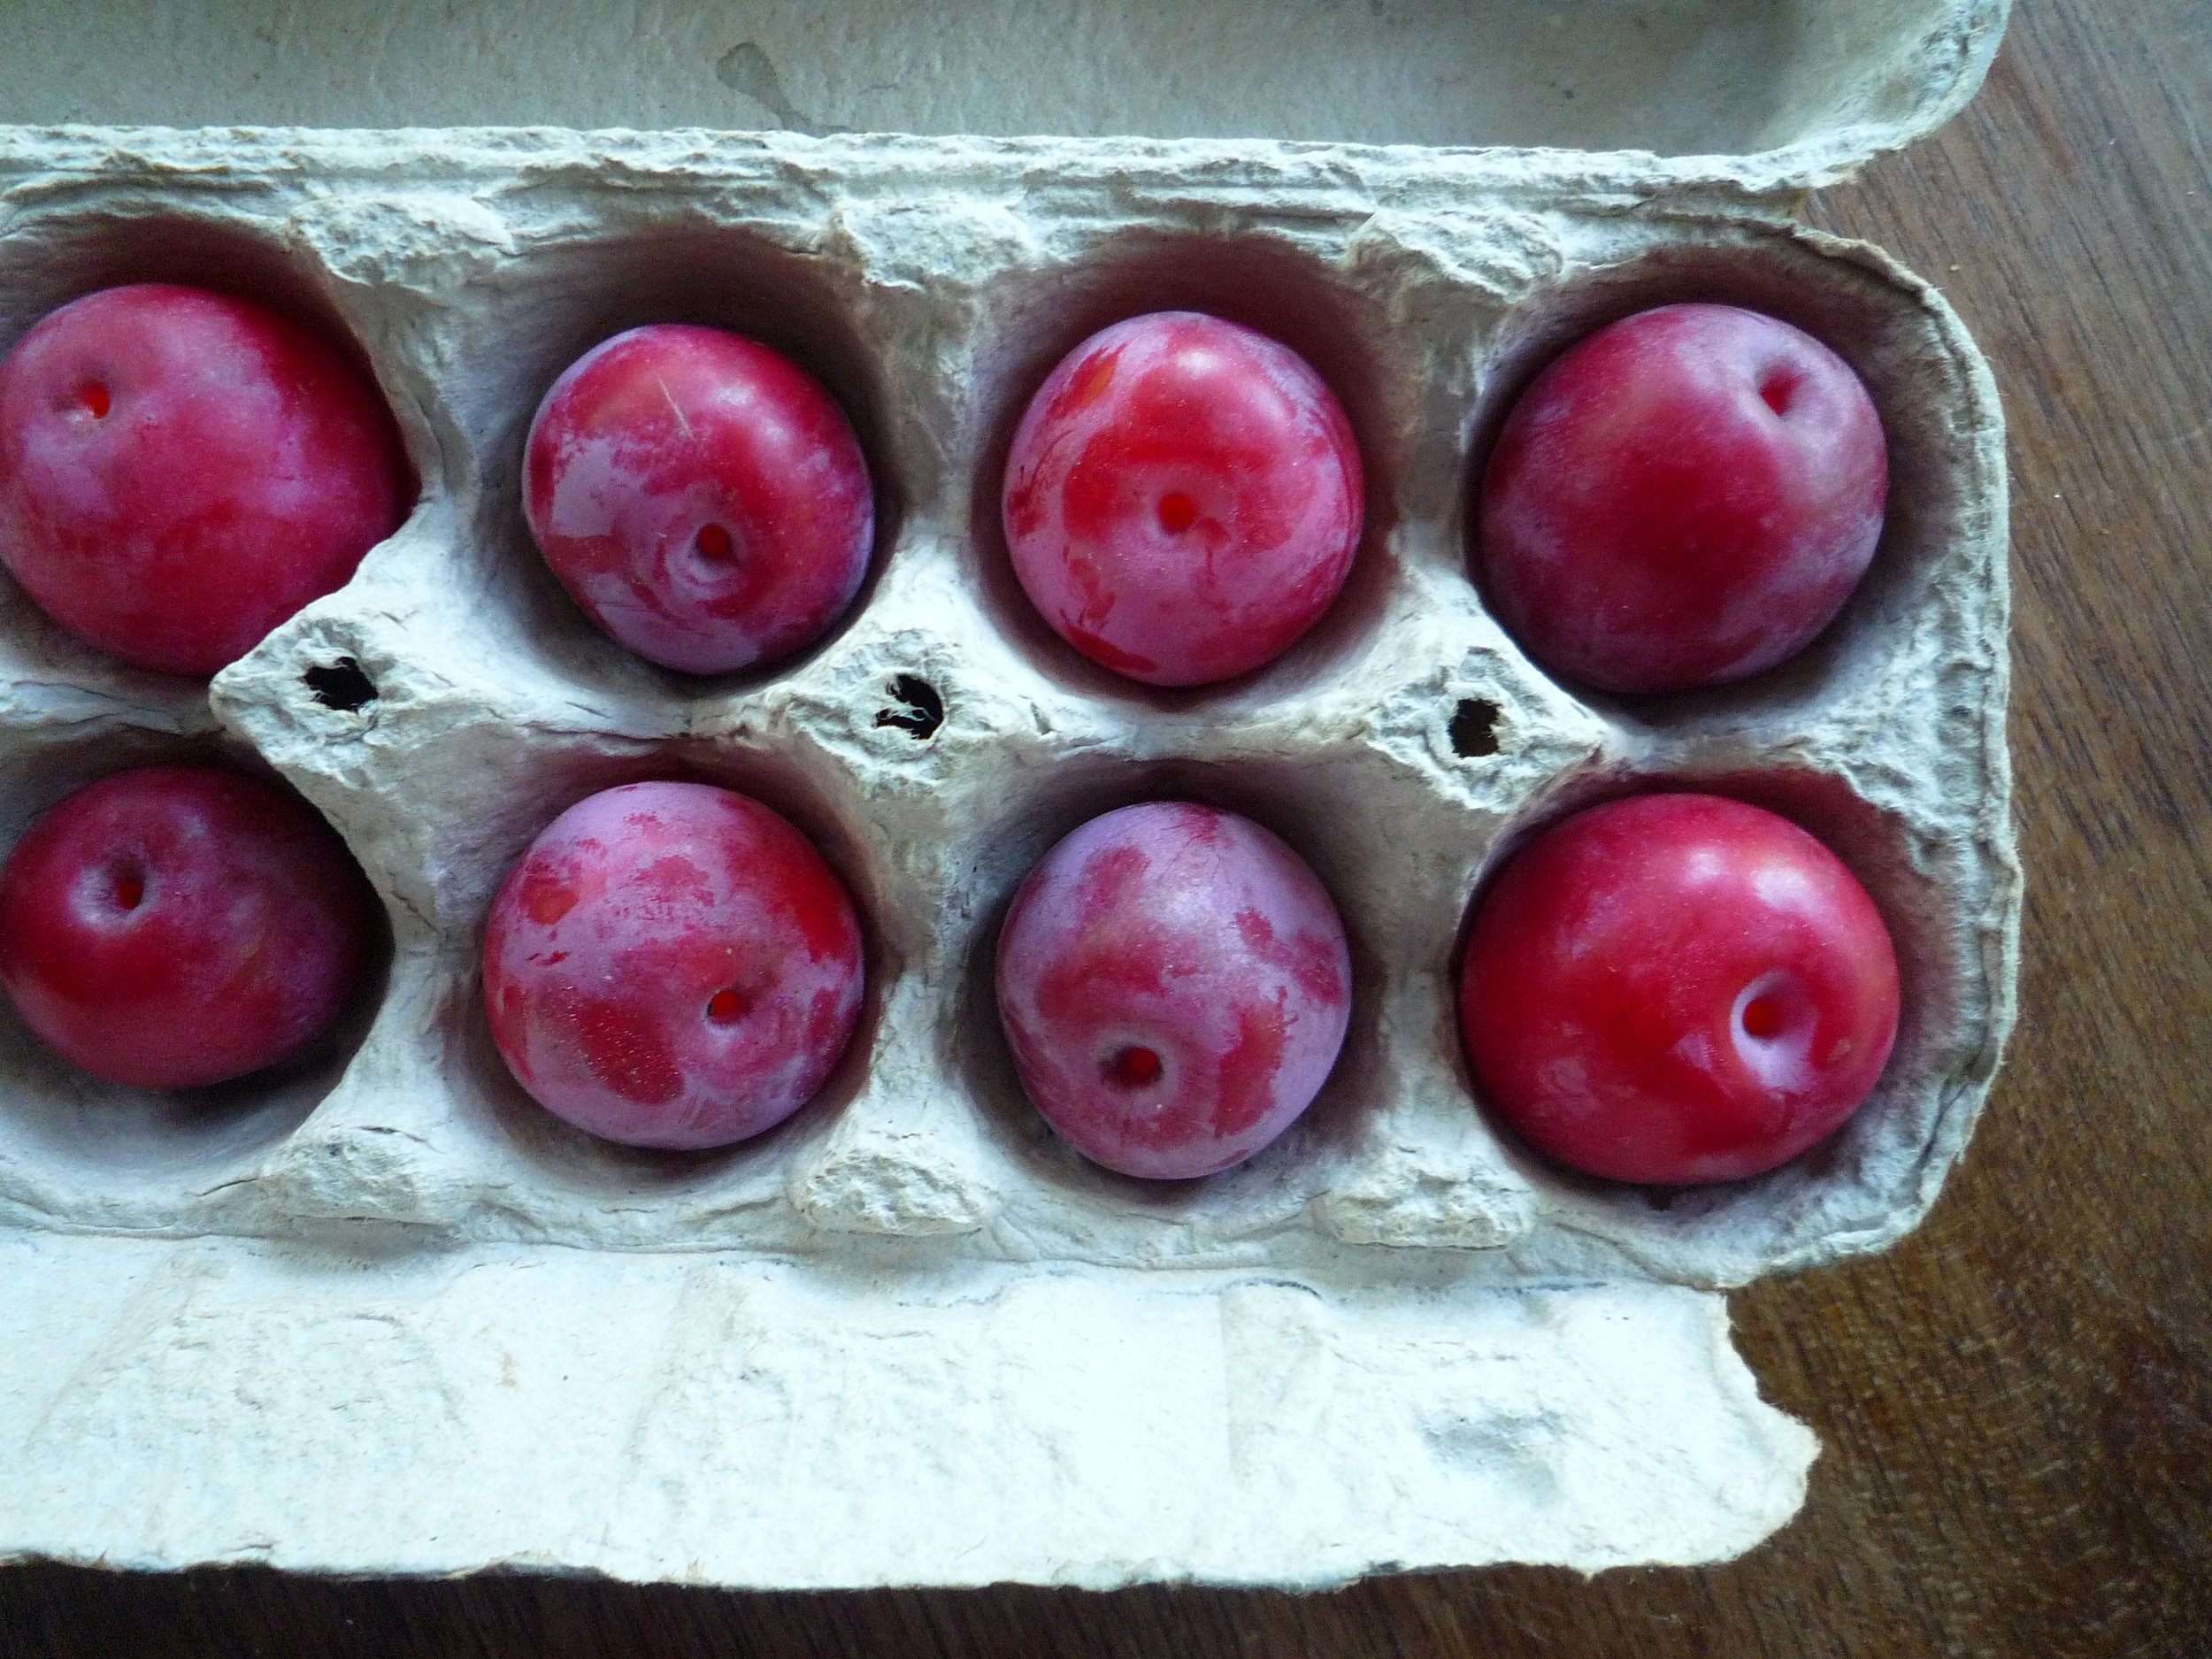 fig. a:  fresh plums